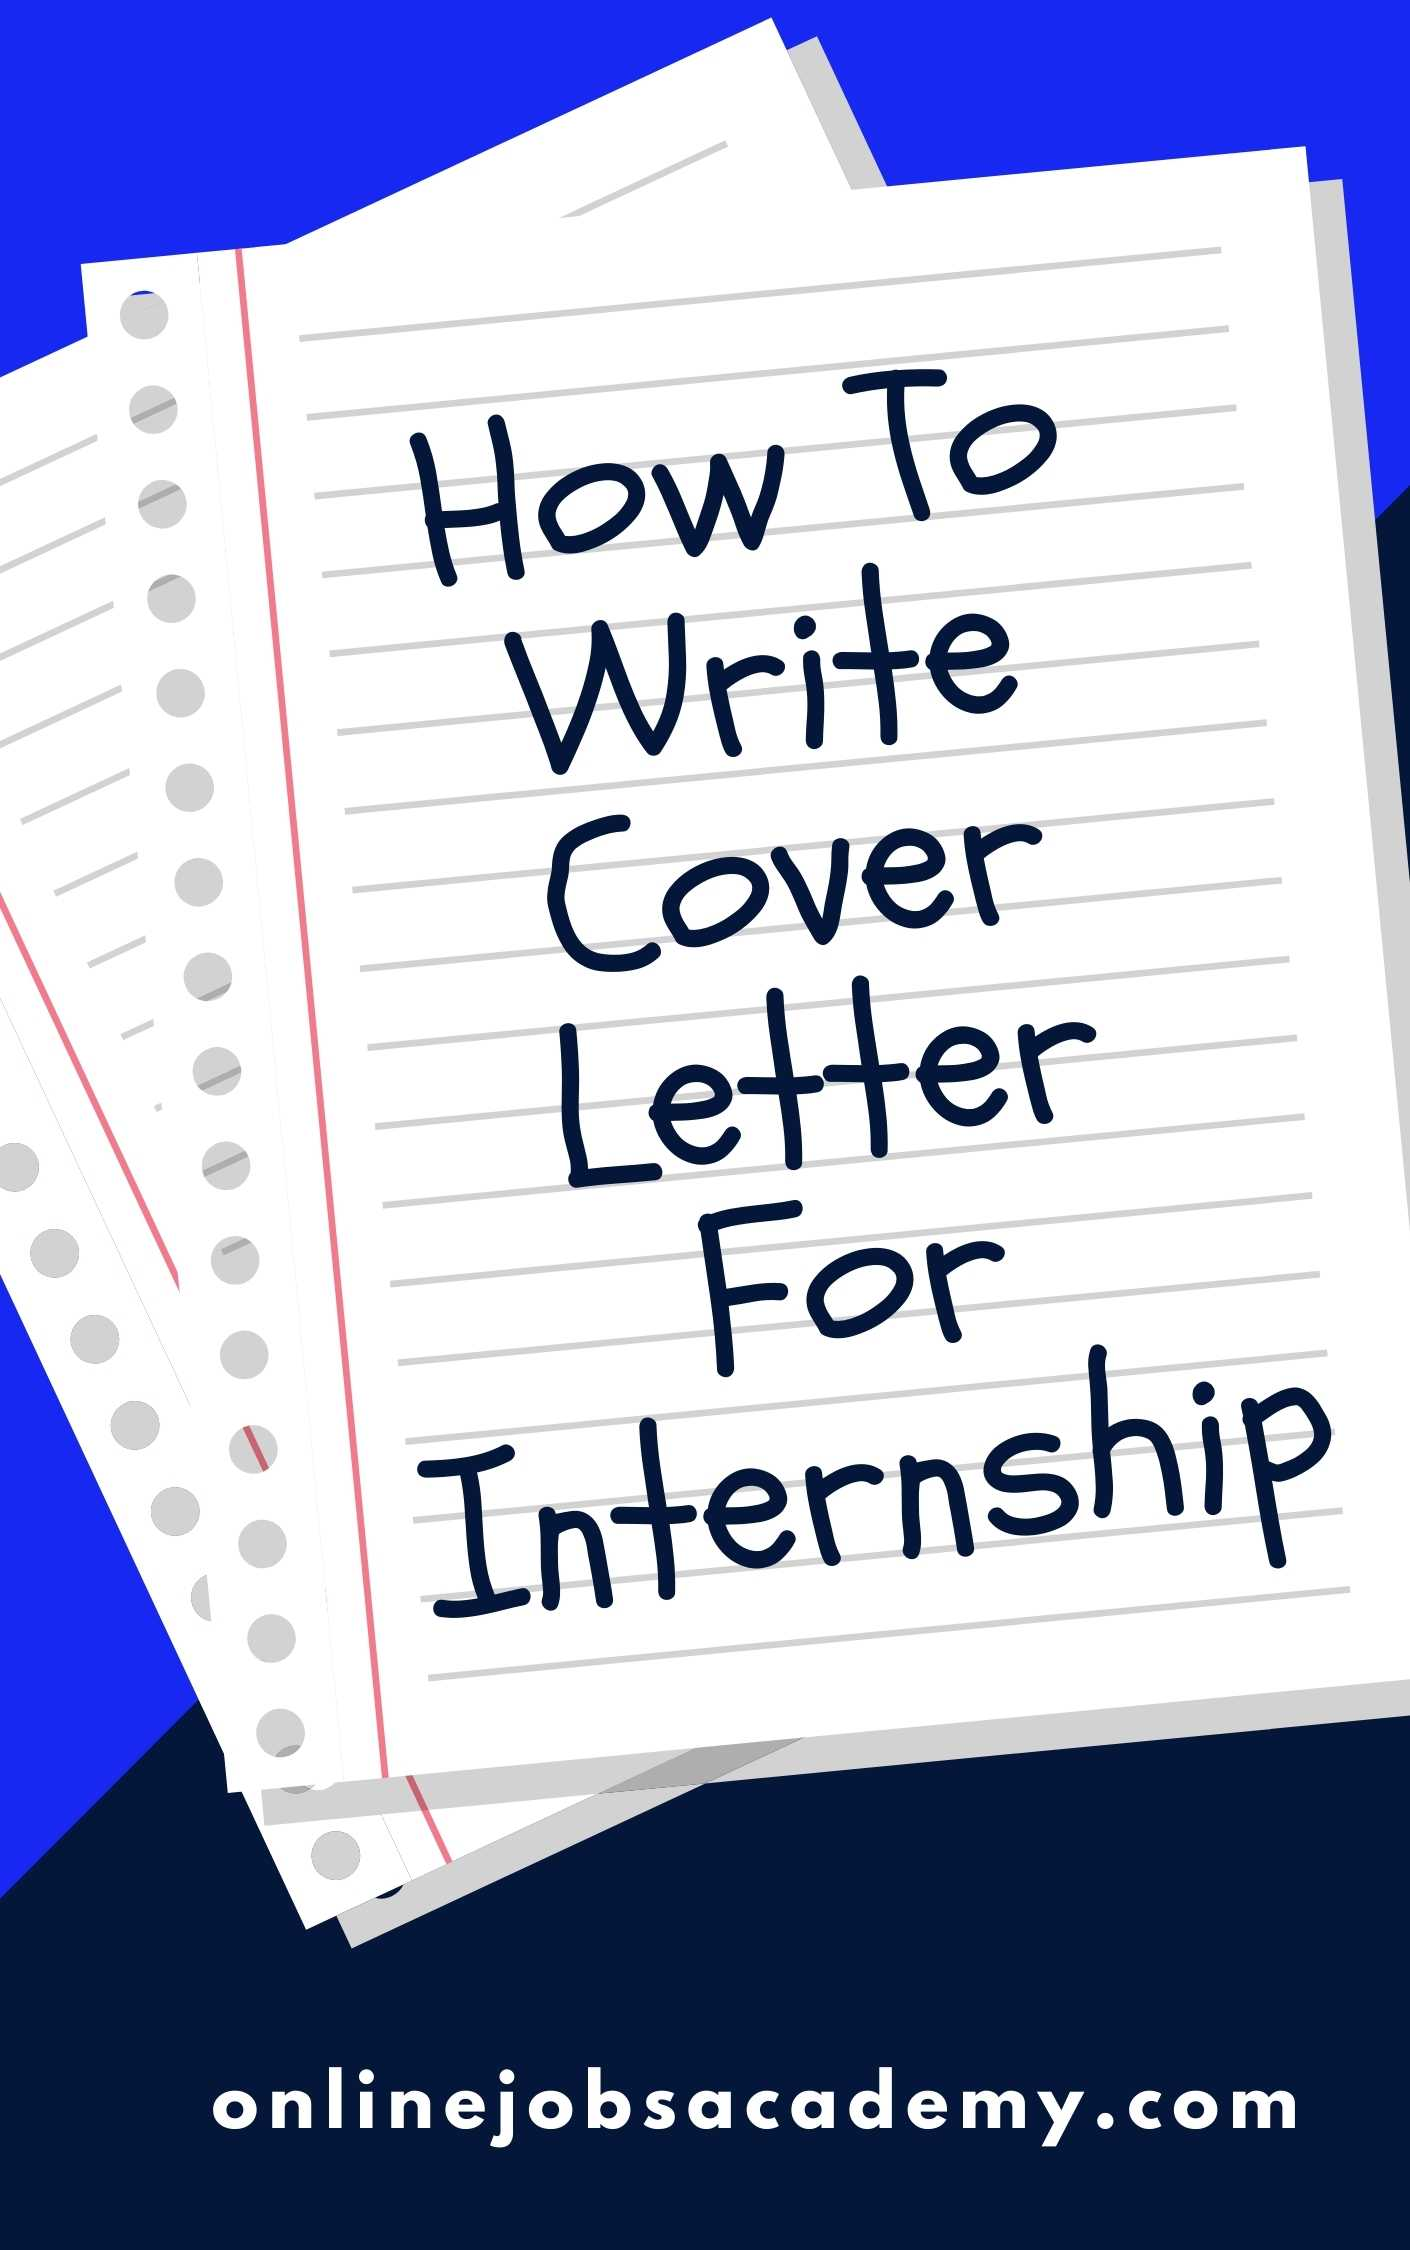 How-To-Write-Cover-Letter-For-Internship